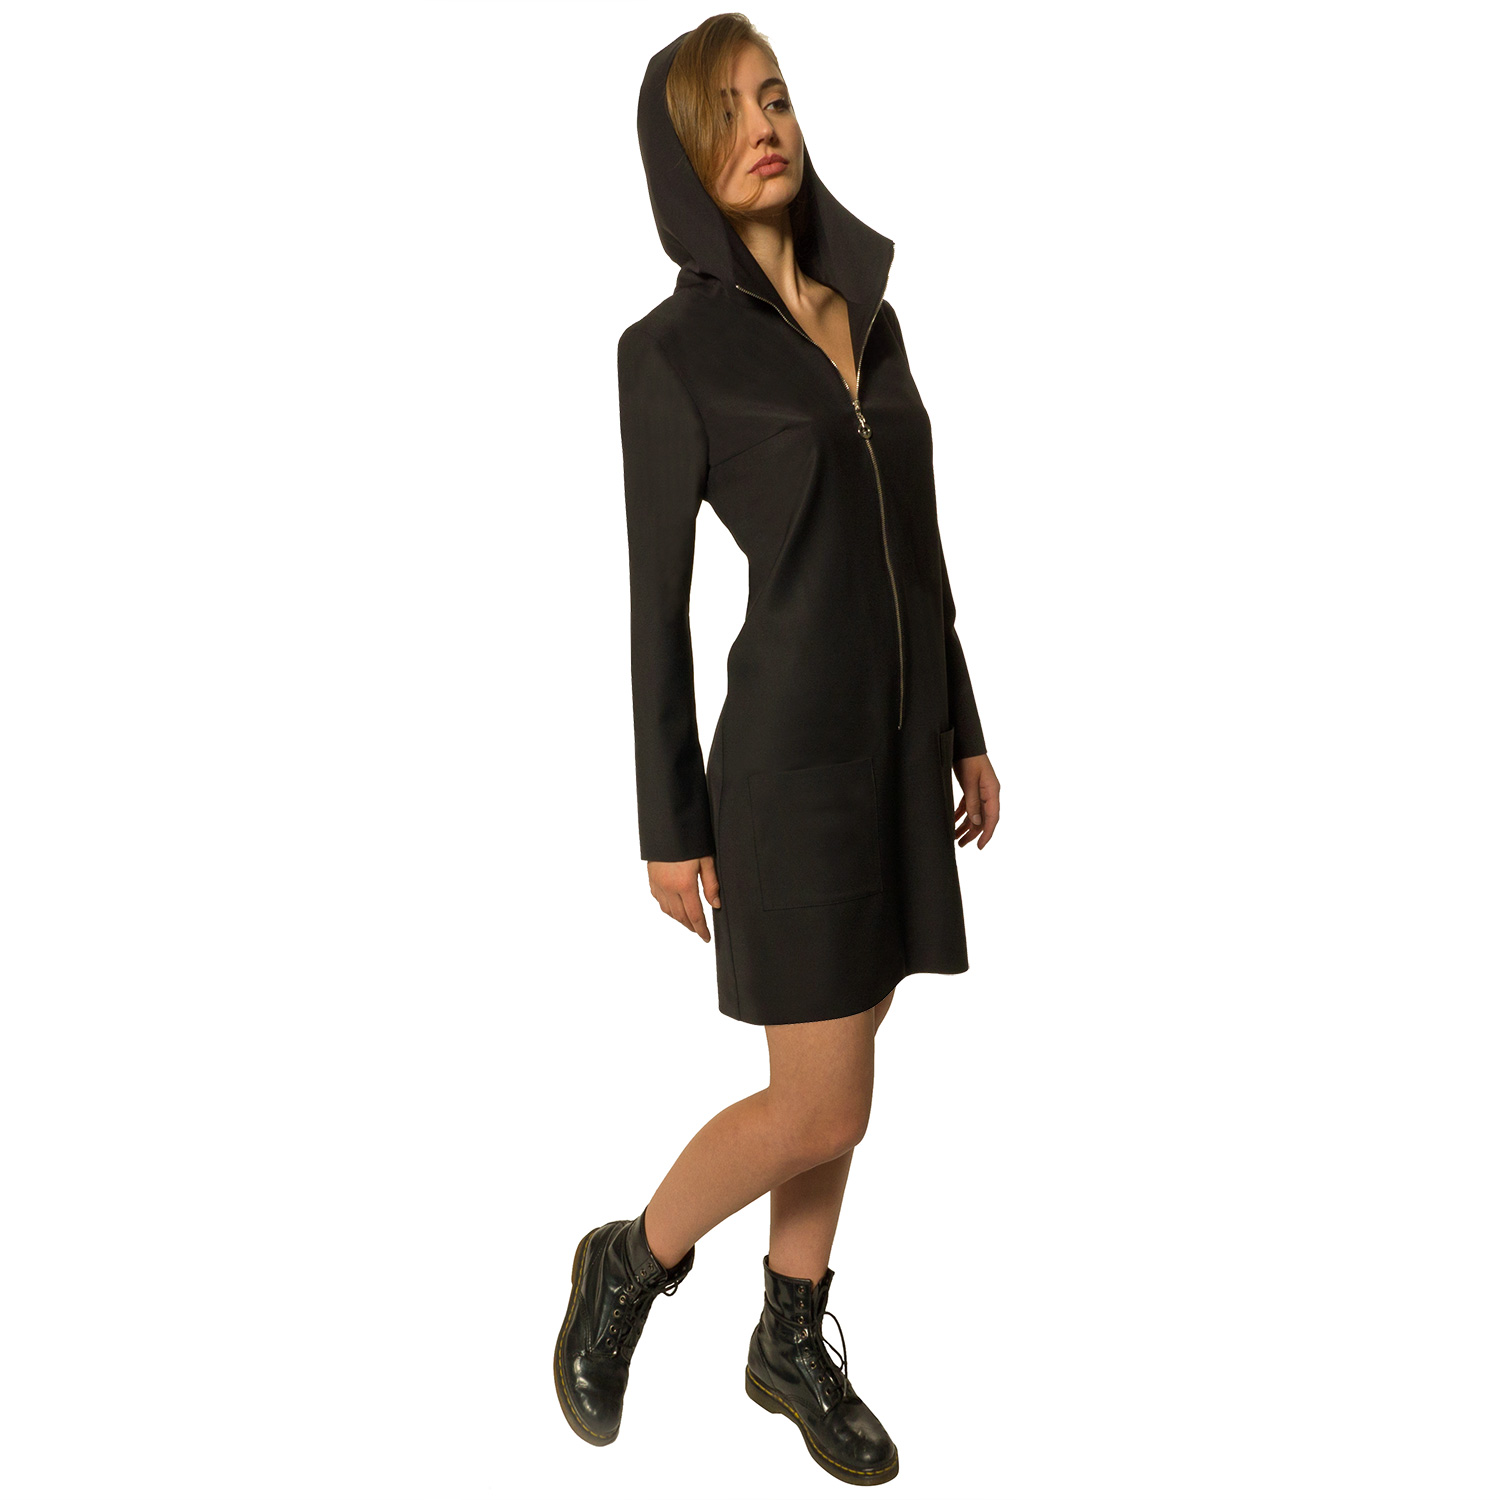 Brandengate Dress Elegance black Fina OT